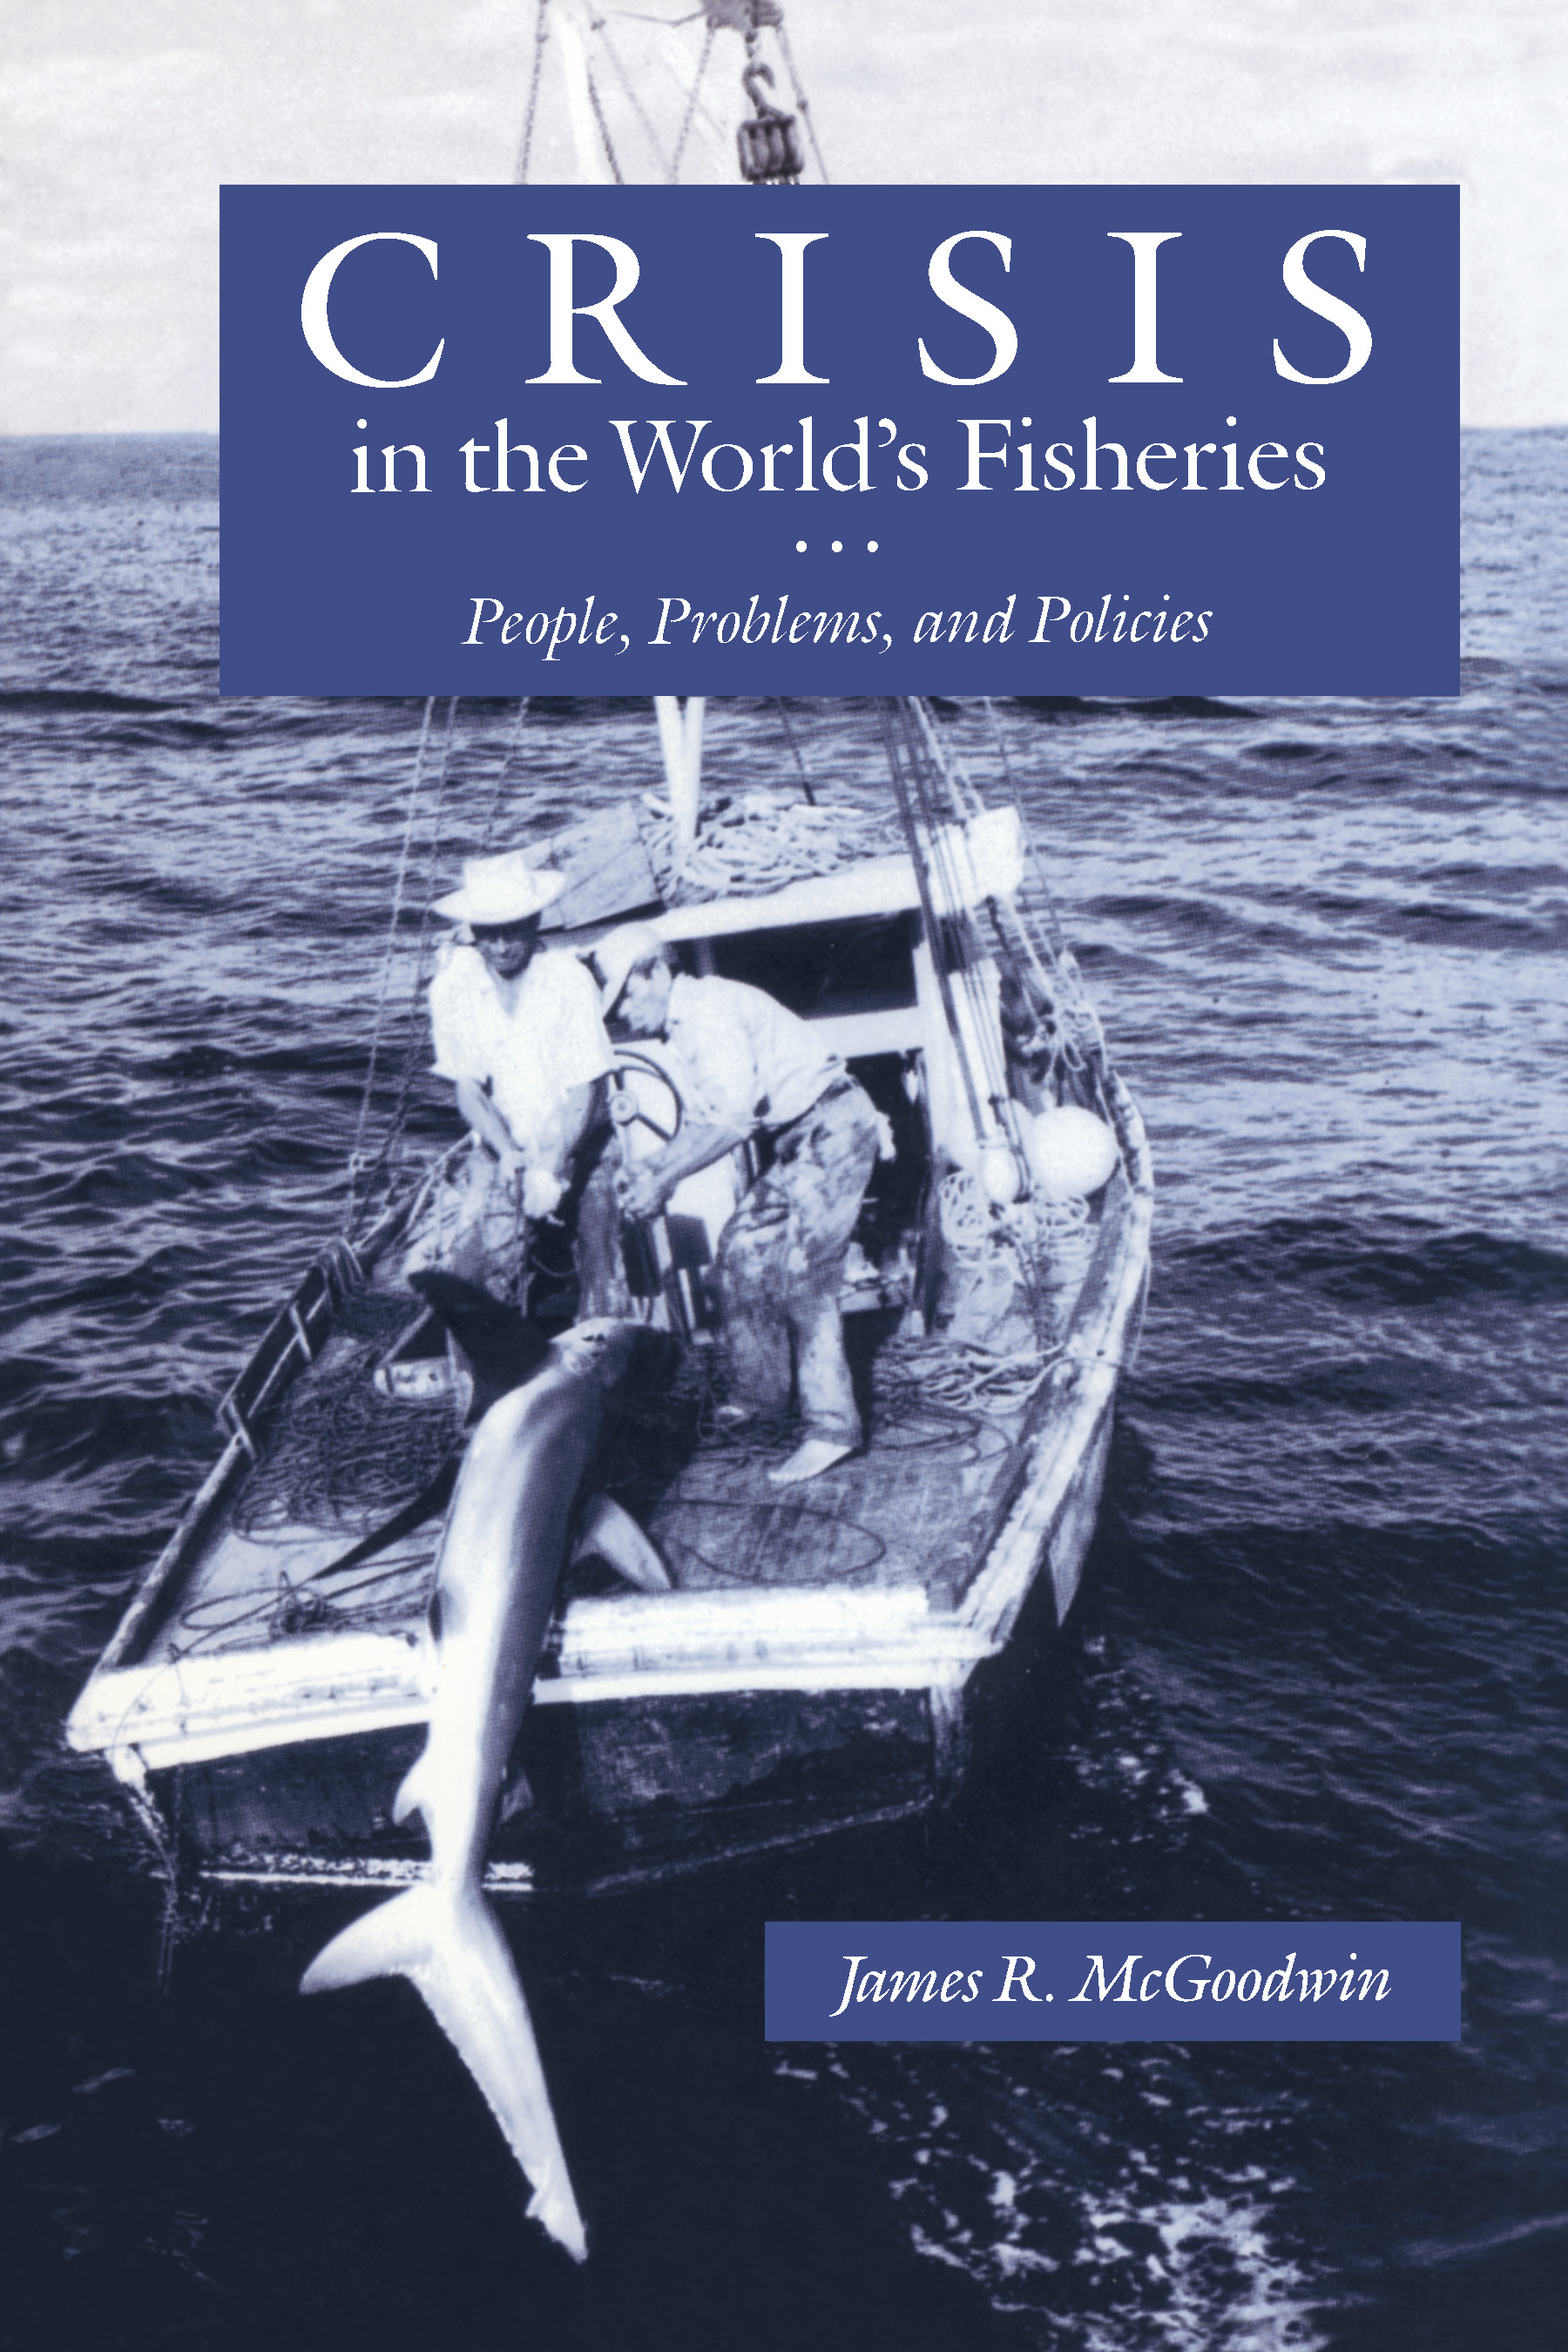 Download Ebook Crisis in the World's Fisheries by James R. McGoodwin Pdf